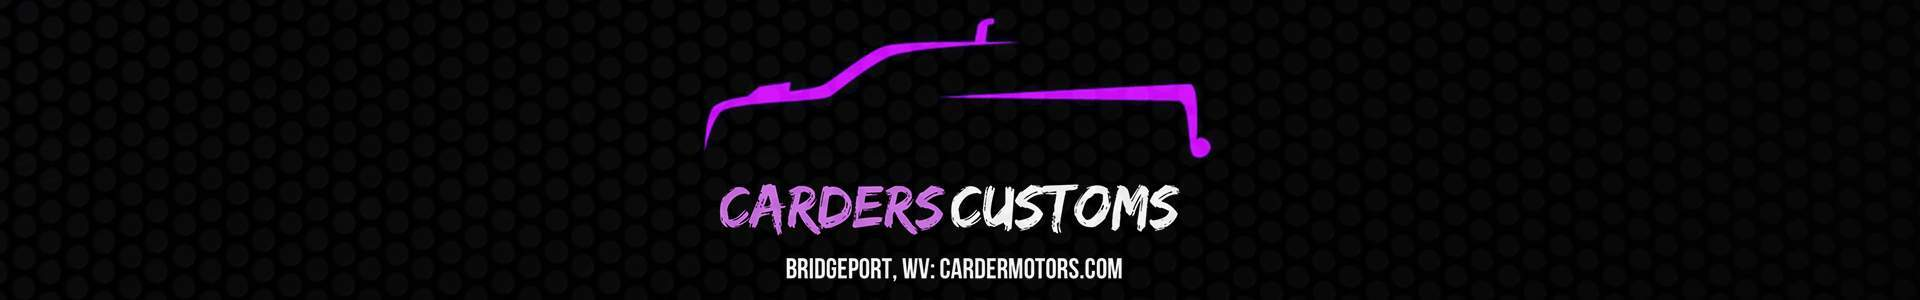 Carder's Customs